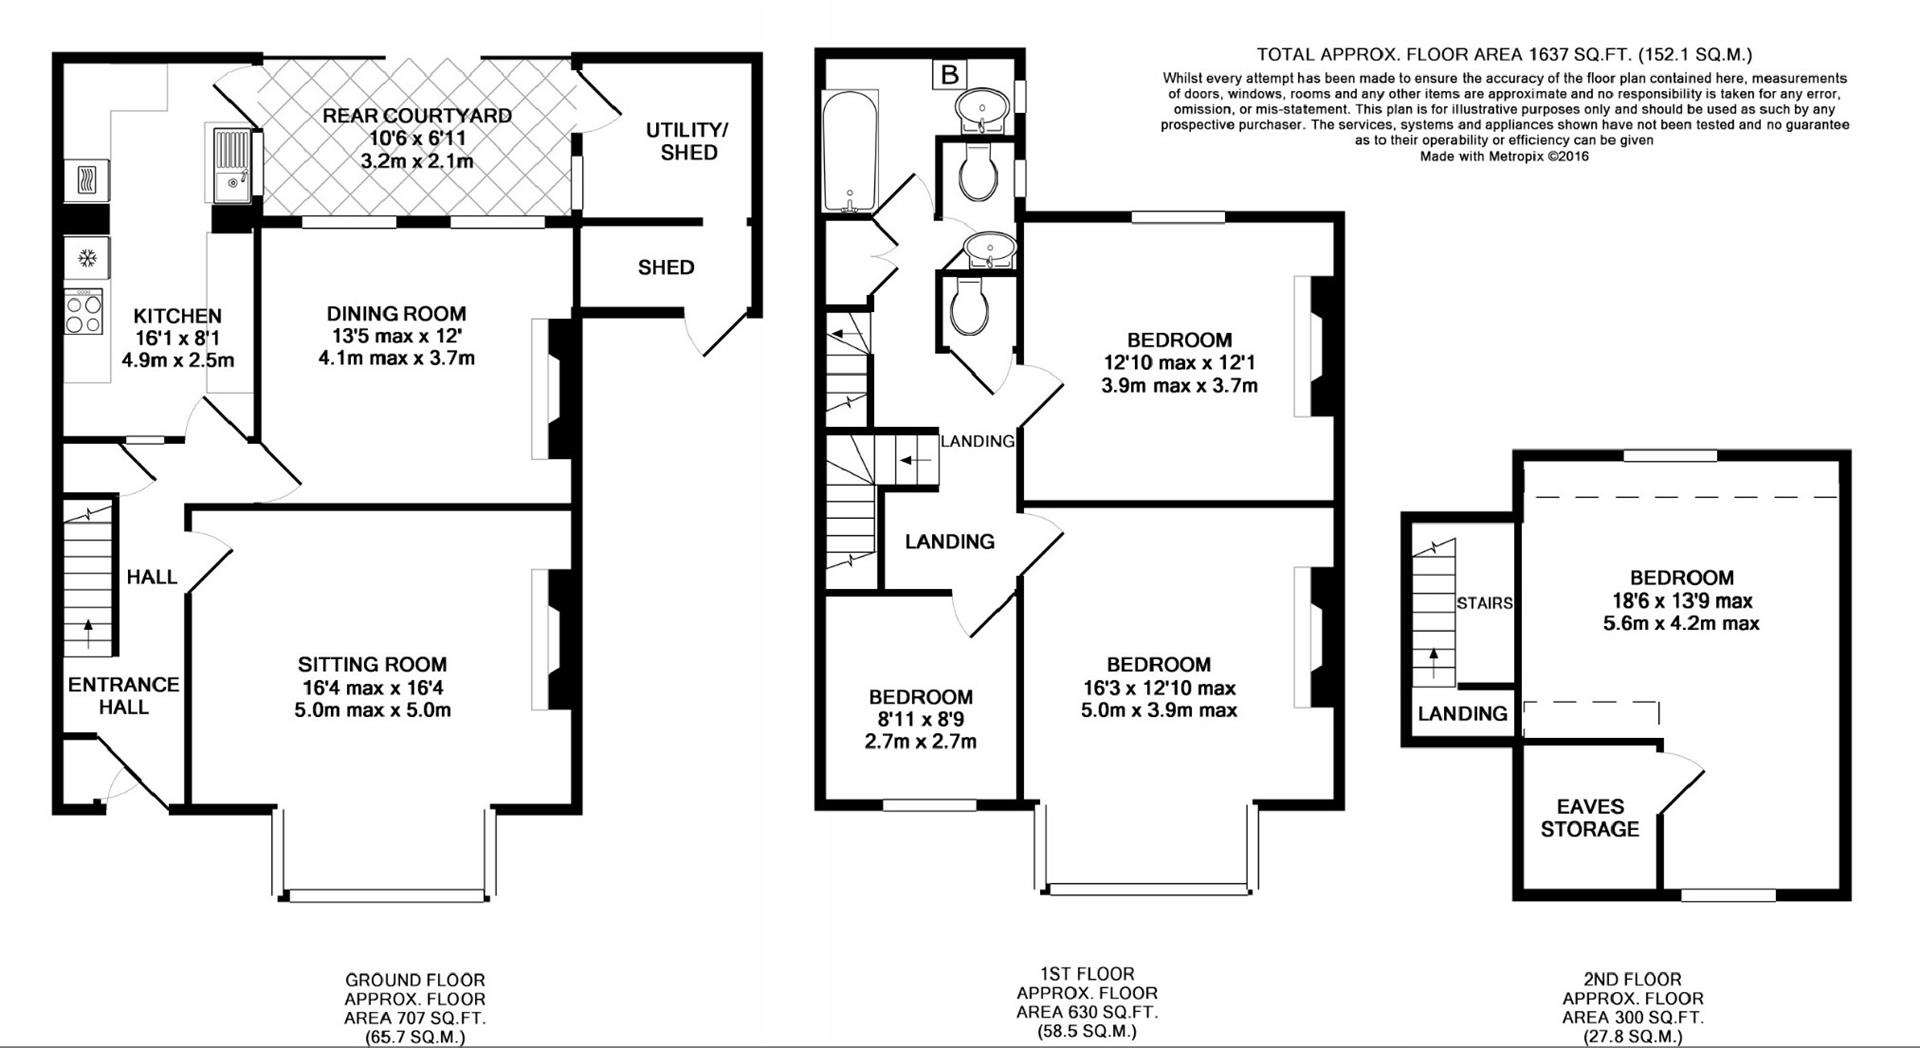 2 Bedroom Apartment For Sale In Cornwall - Auto Electrical ... on